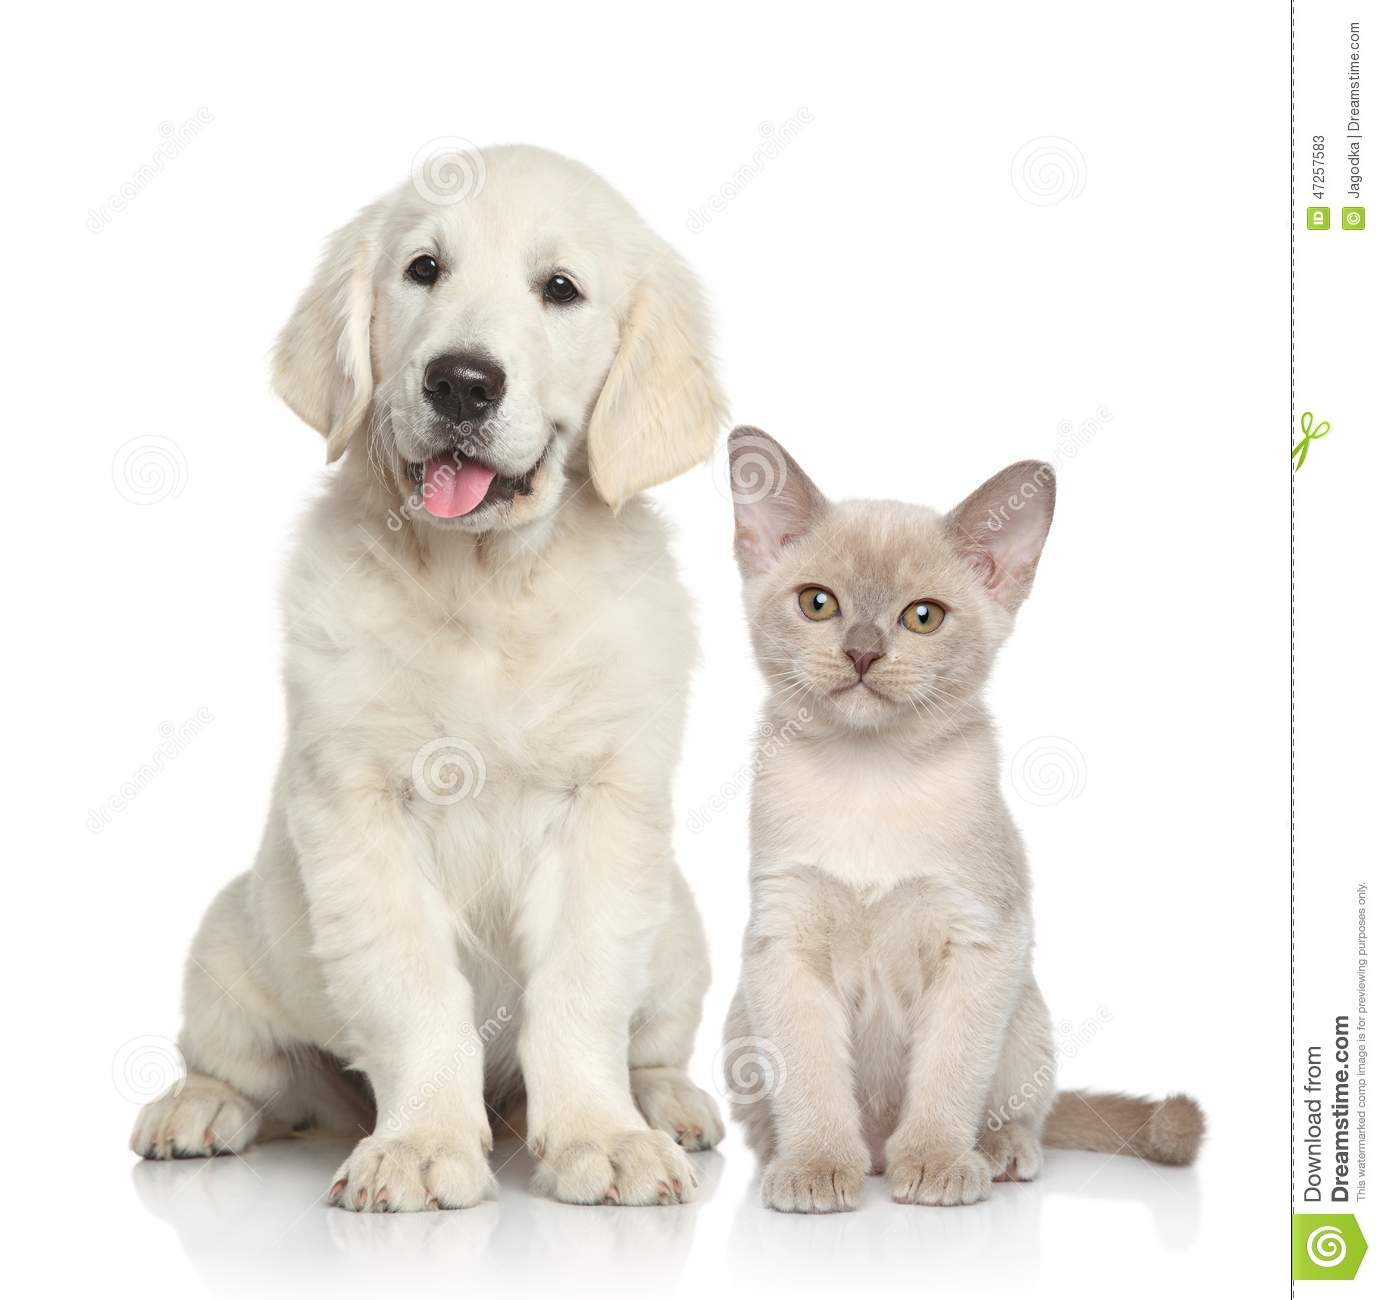 Dog And Cat Together Stock Image Image Of Animal Whisker 47257583